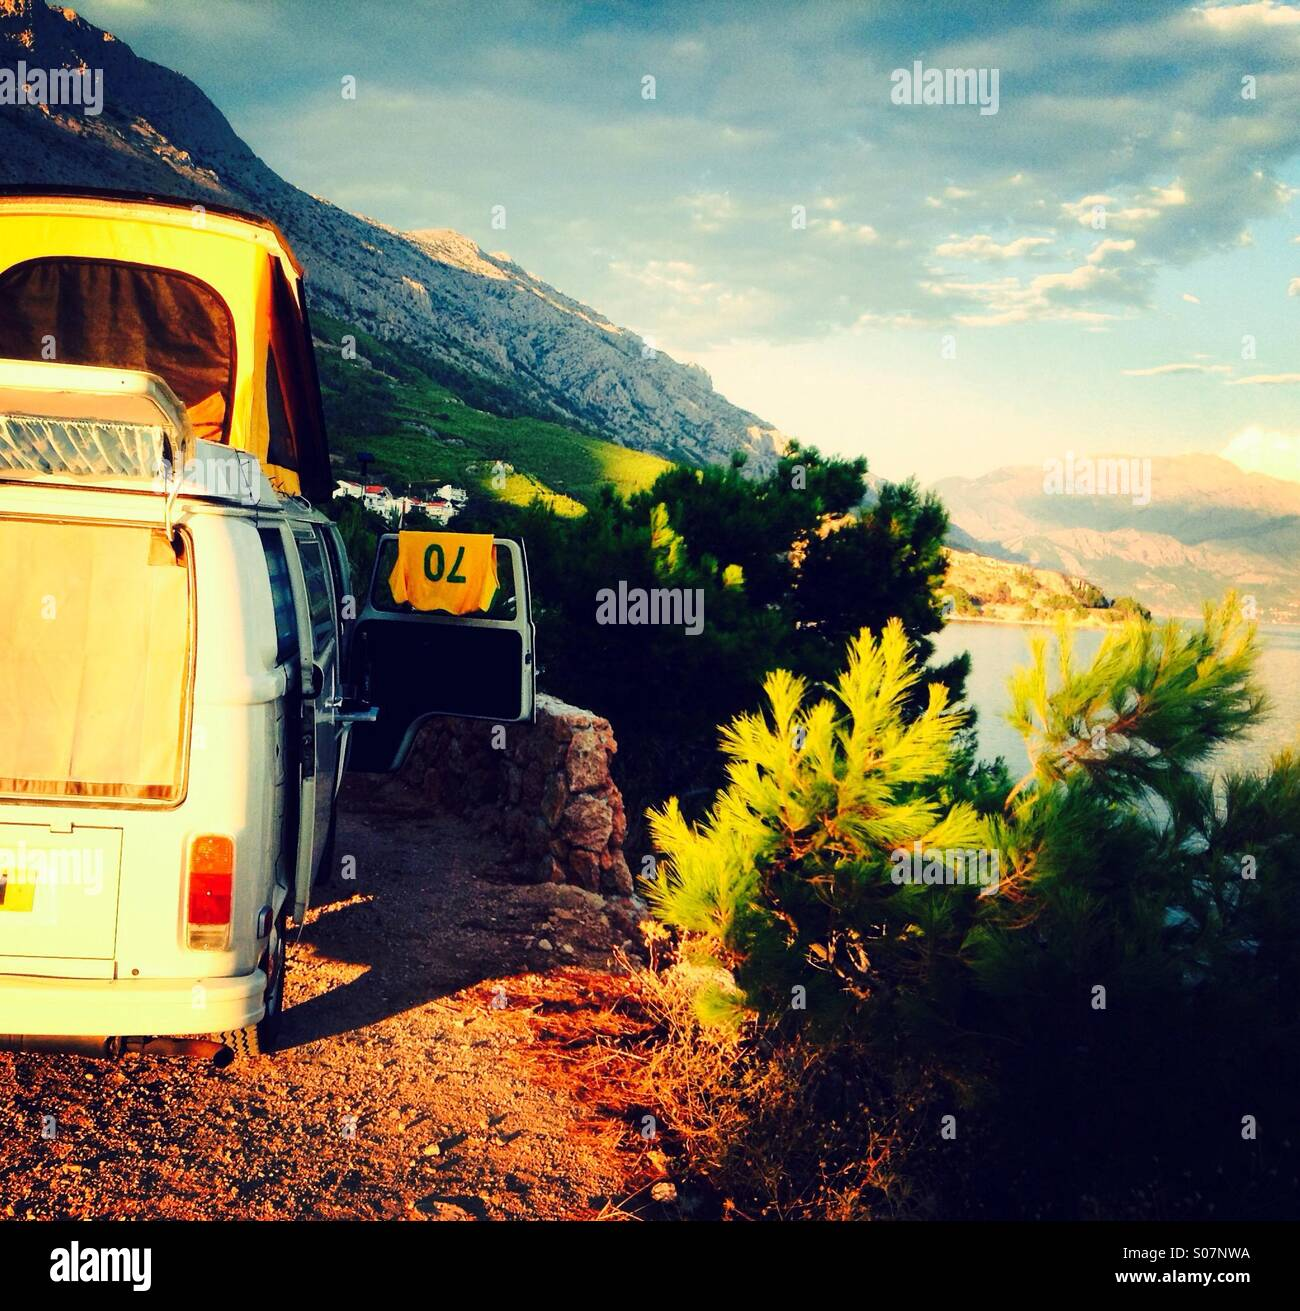 camping in a van stockfotos camping in a van bilder alamy. Black Bedroom Furniture Sets. Home Design Ideas